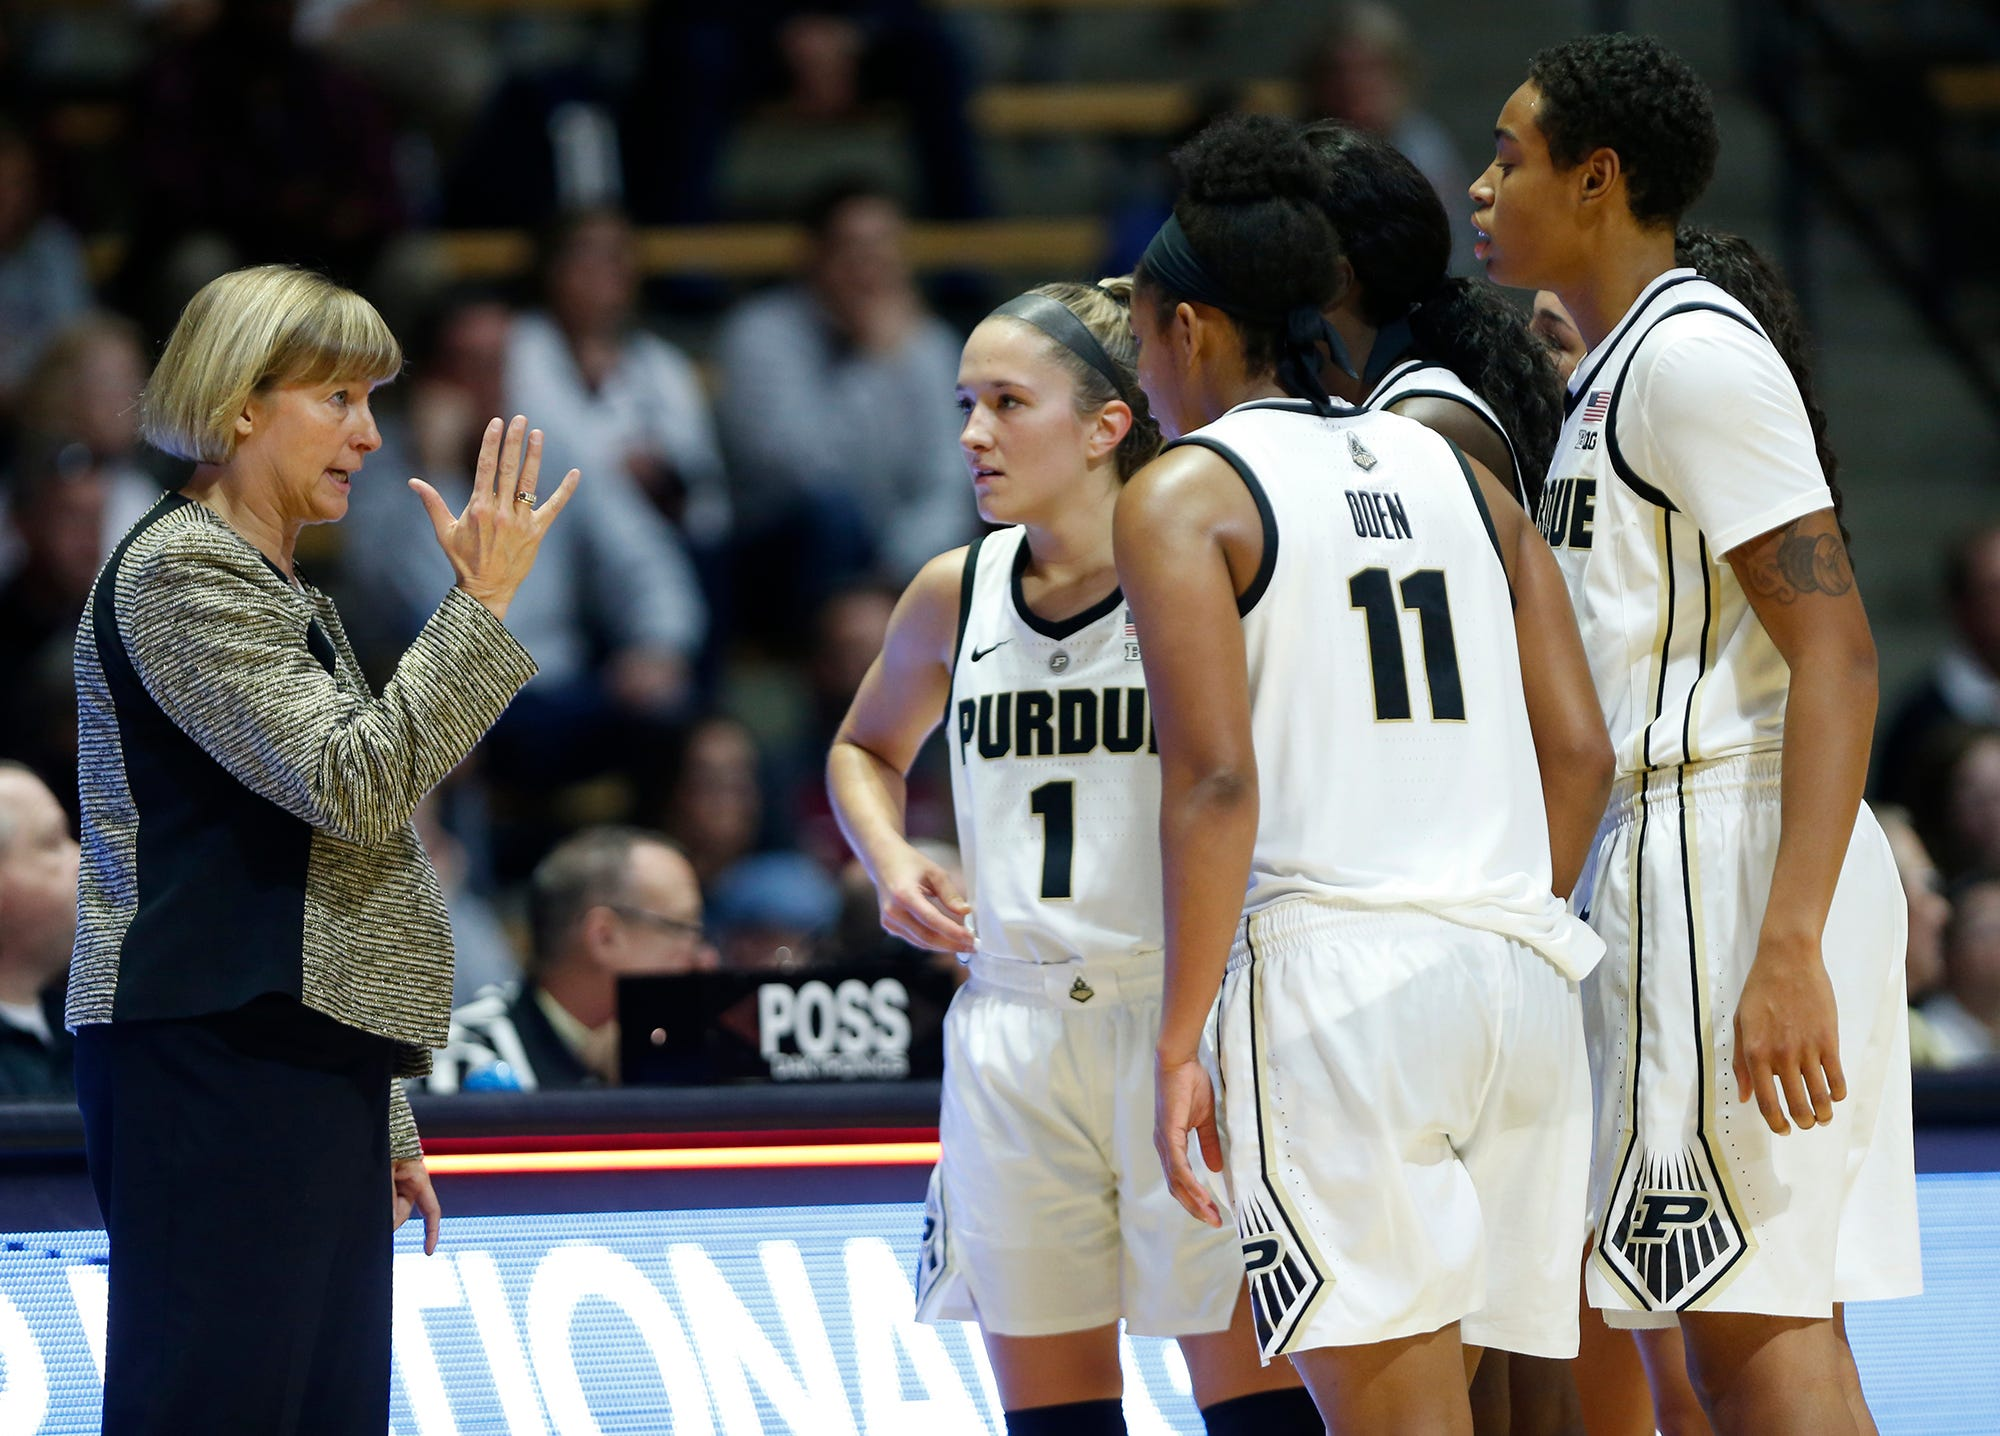 Purdue head coach Sharon Versyp gives directions to her players during a timeout against Harvard Sunday, November 11, 2018, at Mackey Arena. Purdue defeated Harvard 66-65.